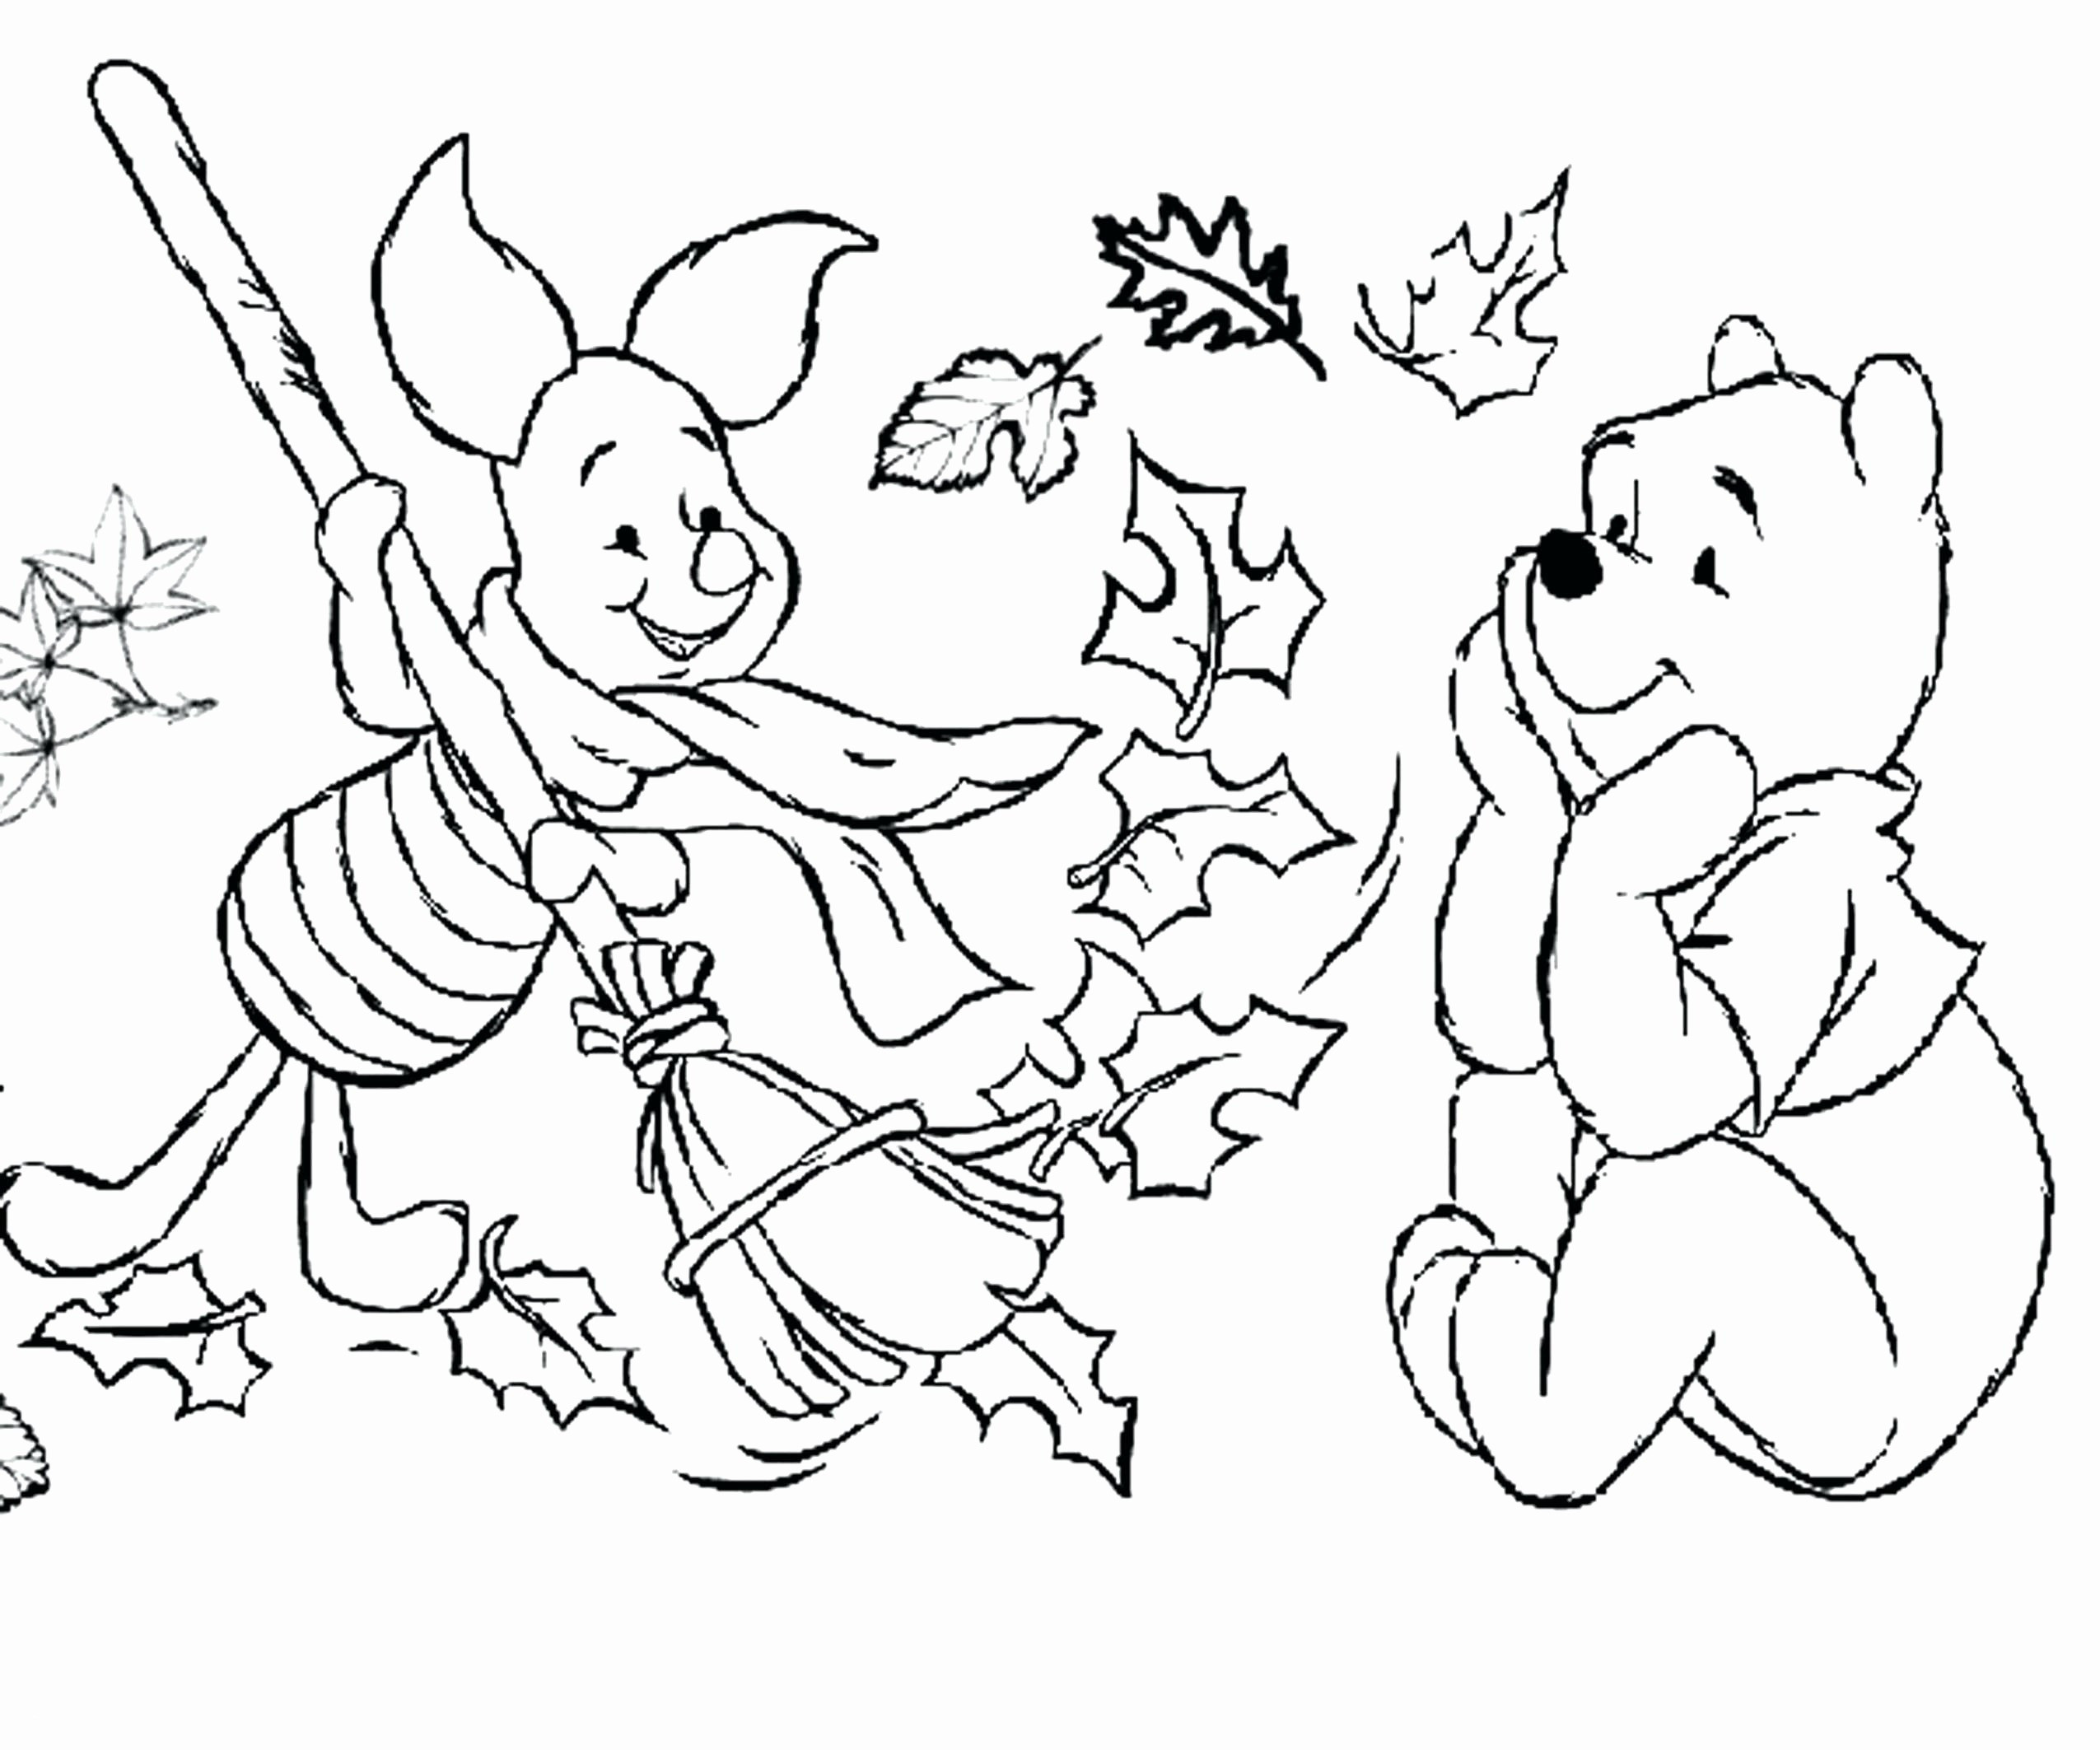 Anime Engel Ausmalbilder Frisch 4 Kids Coloring Printables Coloring Page for Kids Coloring Pages Bilder